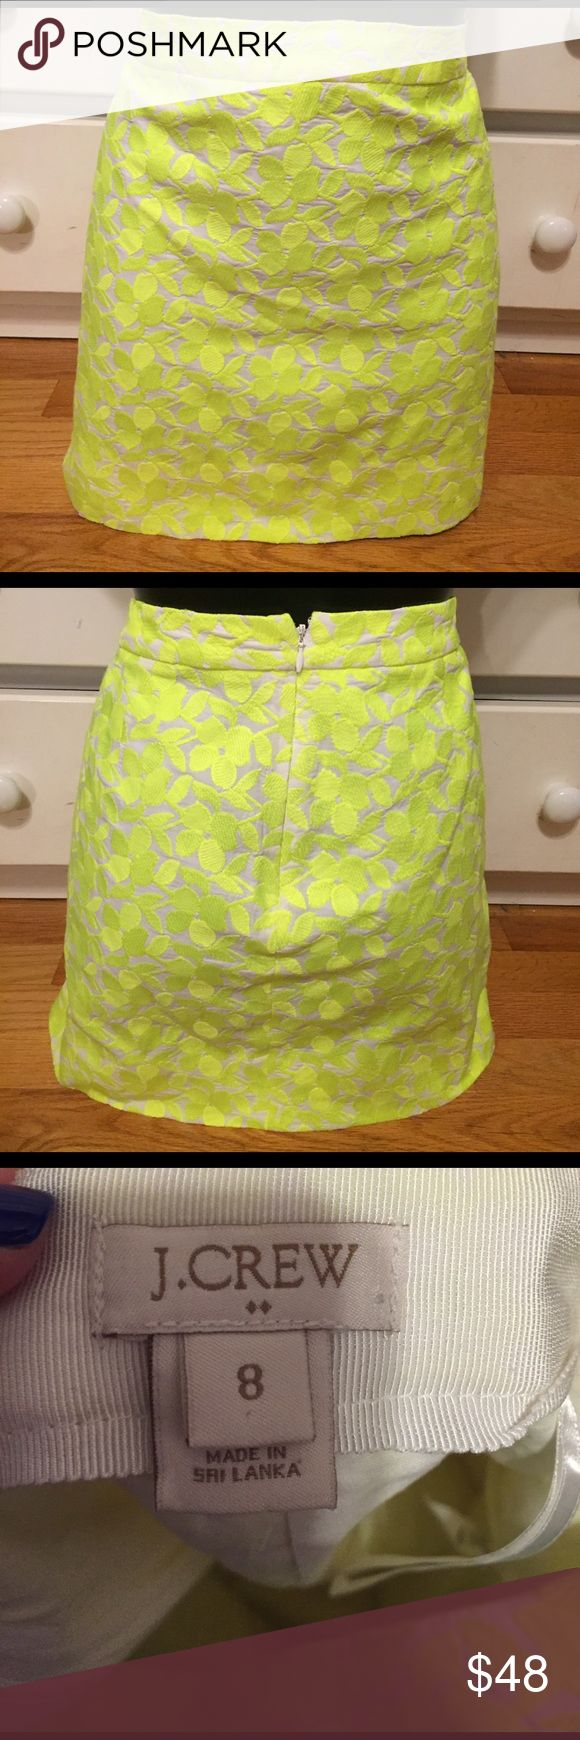 """J. Crew Neon Yellow Floral Skirt This skirt is a show stopper and is extremely bright. It's in good used condition. The waist flat across measures 16.5"""" and the length is 15.75"""". Please feel free to make an offer. 😊 J. Crew Skirts"""